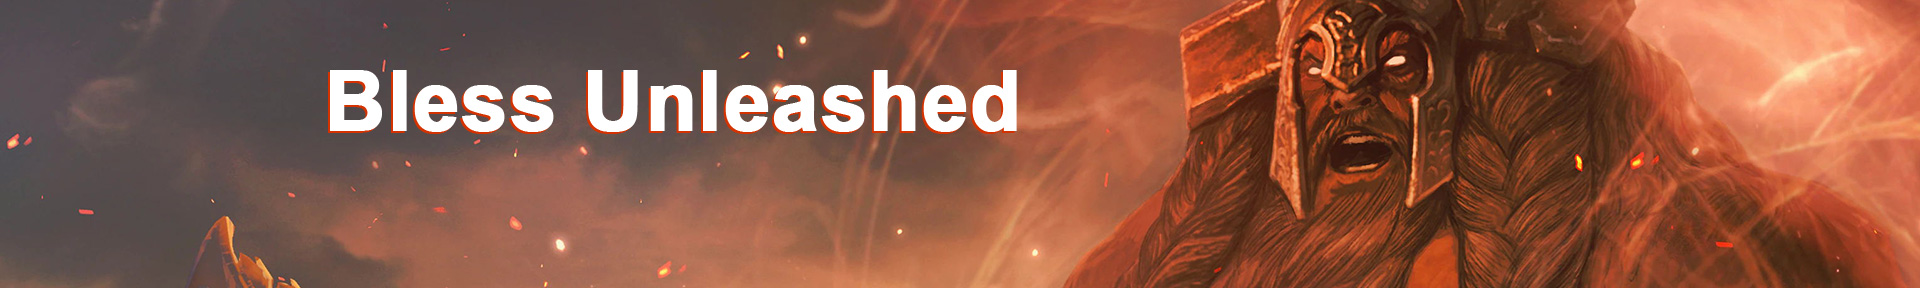 Bless Unleashed Starseeds